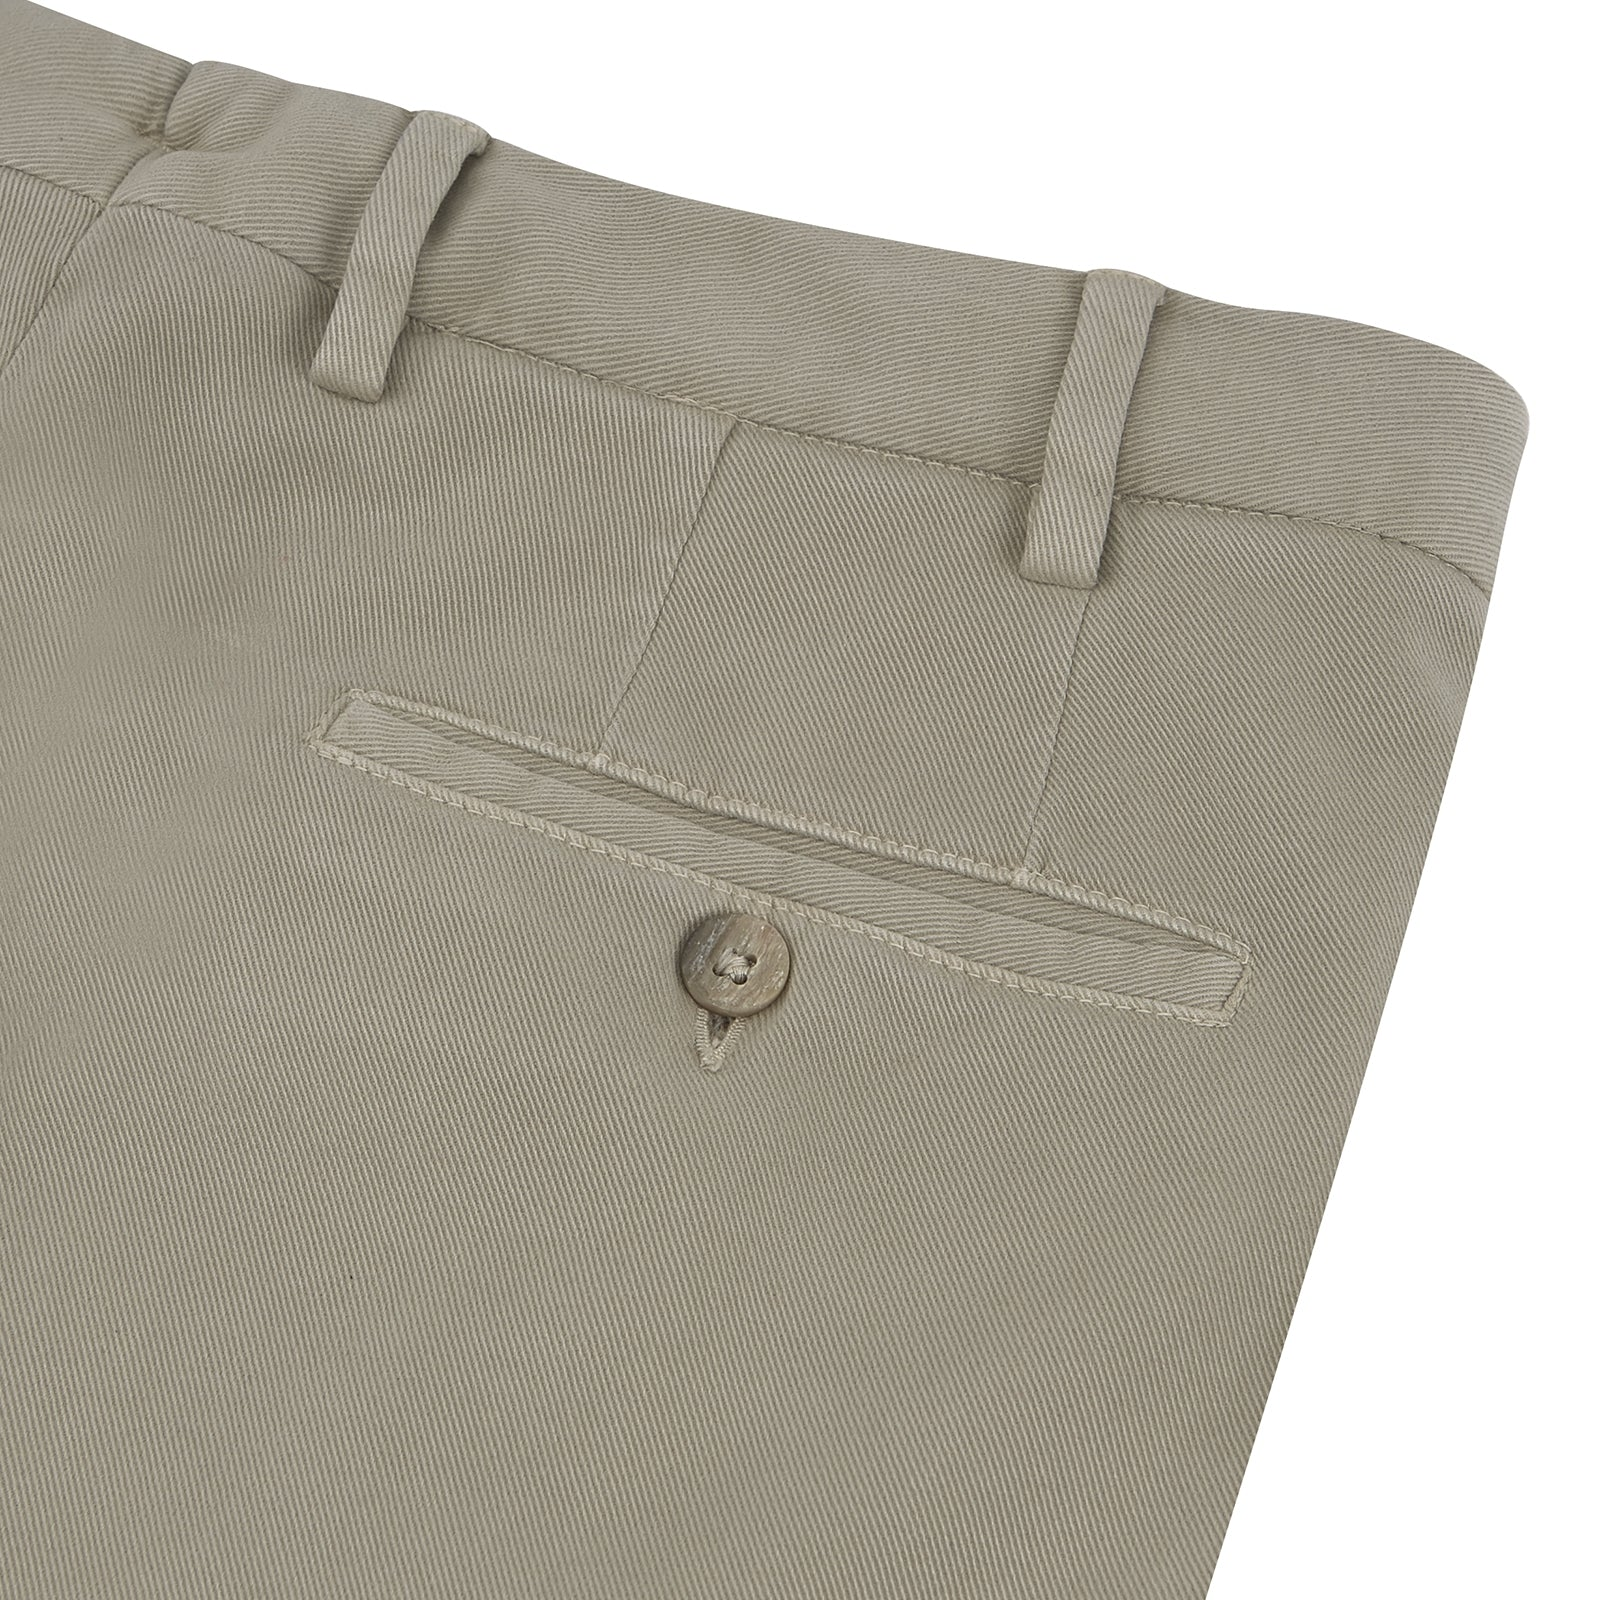 Manson Pale Tan Cotton Trousers